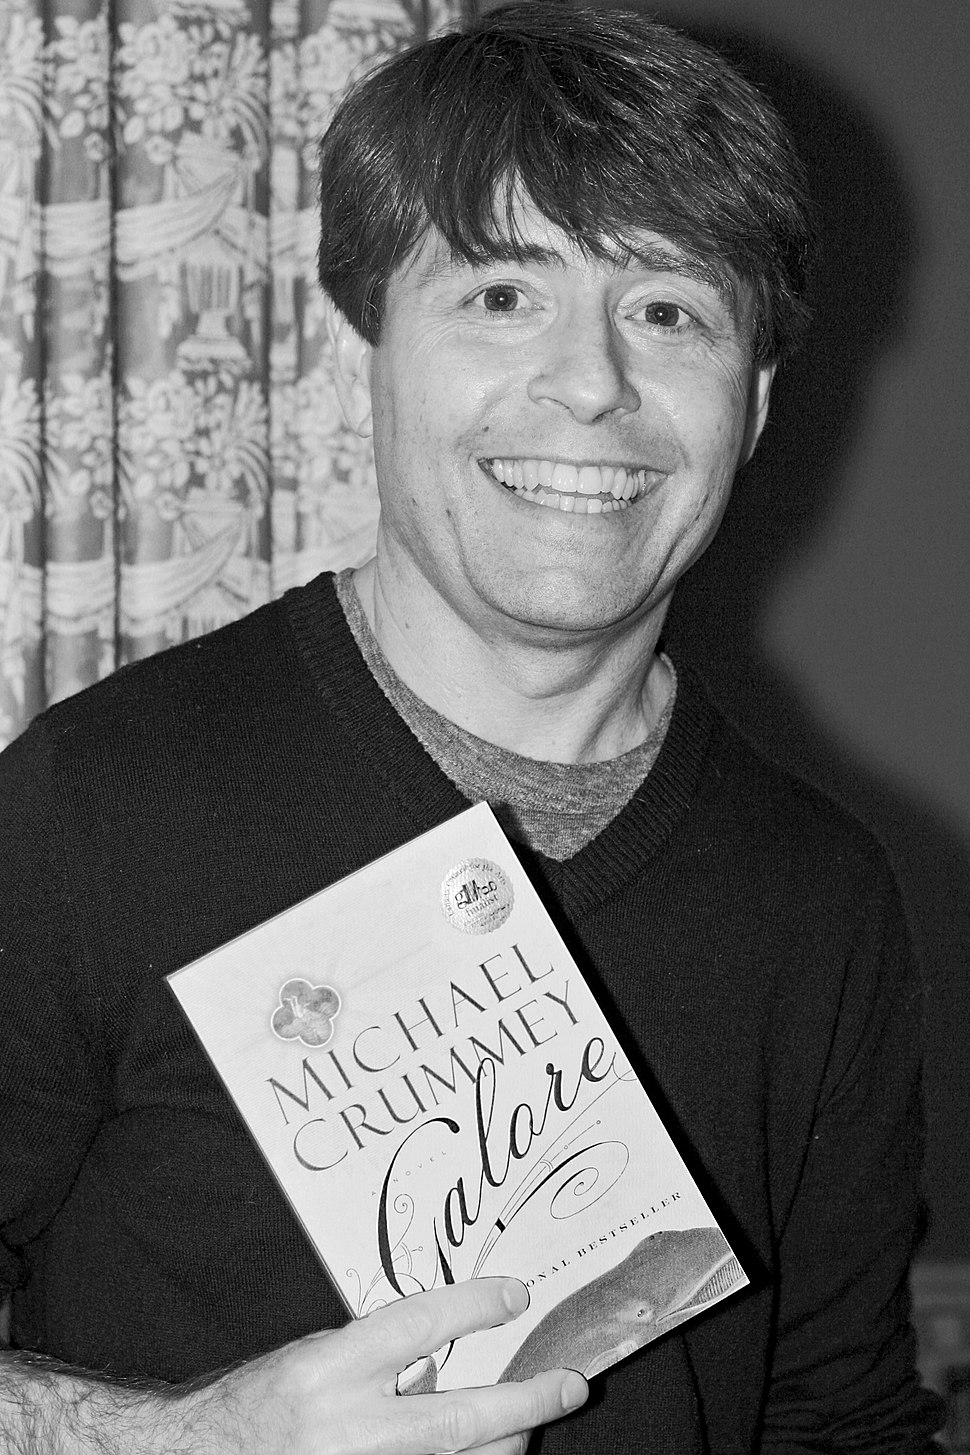 Author Michael Crummey, May 28 2014